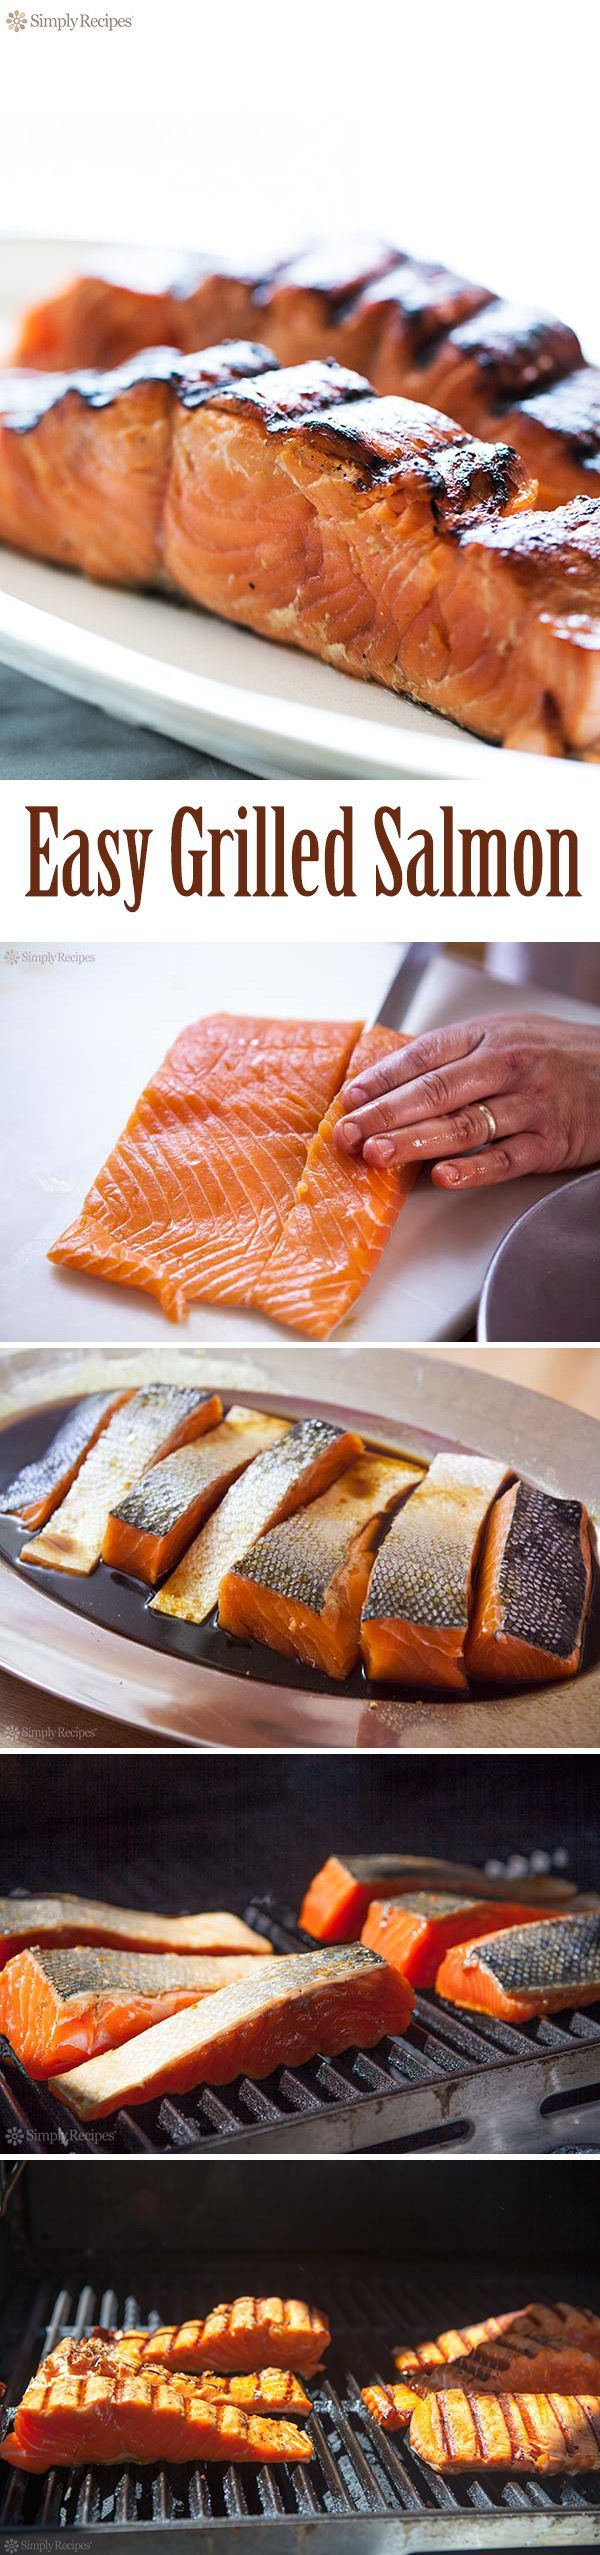 Grilling salmon is easy! Especially with these tips on how to grill them perfectly every time. Recipe includes 4 great marinades. #MemorialDay #LaborDay #July4th On SimplyRecipes.com #Grillingtips